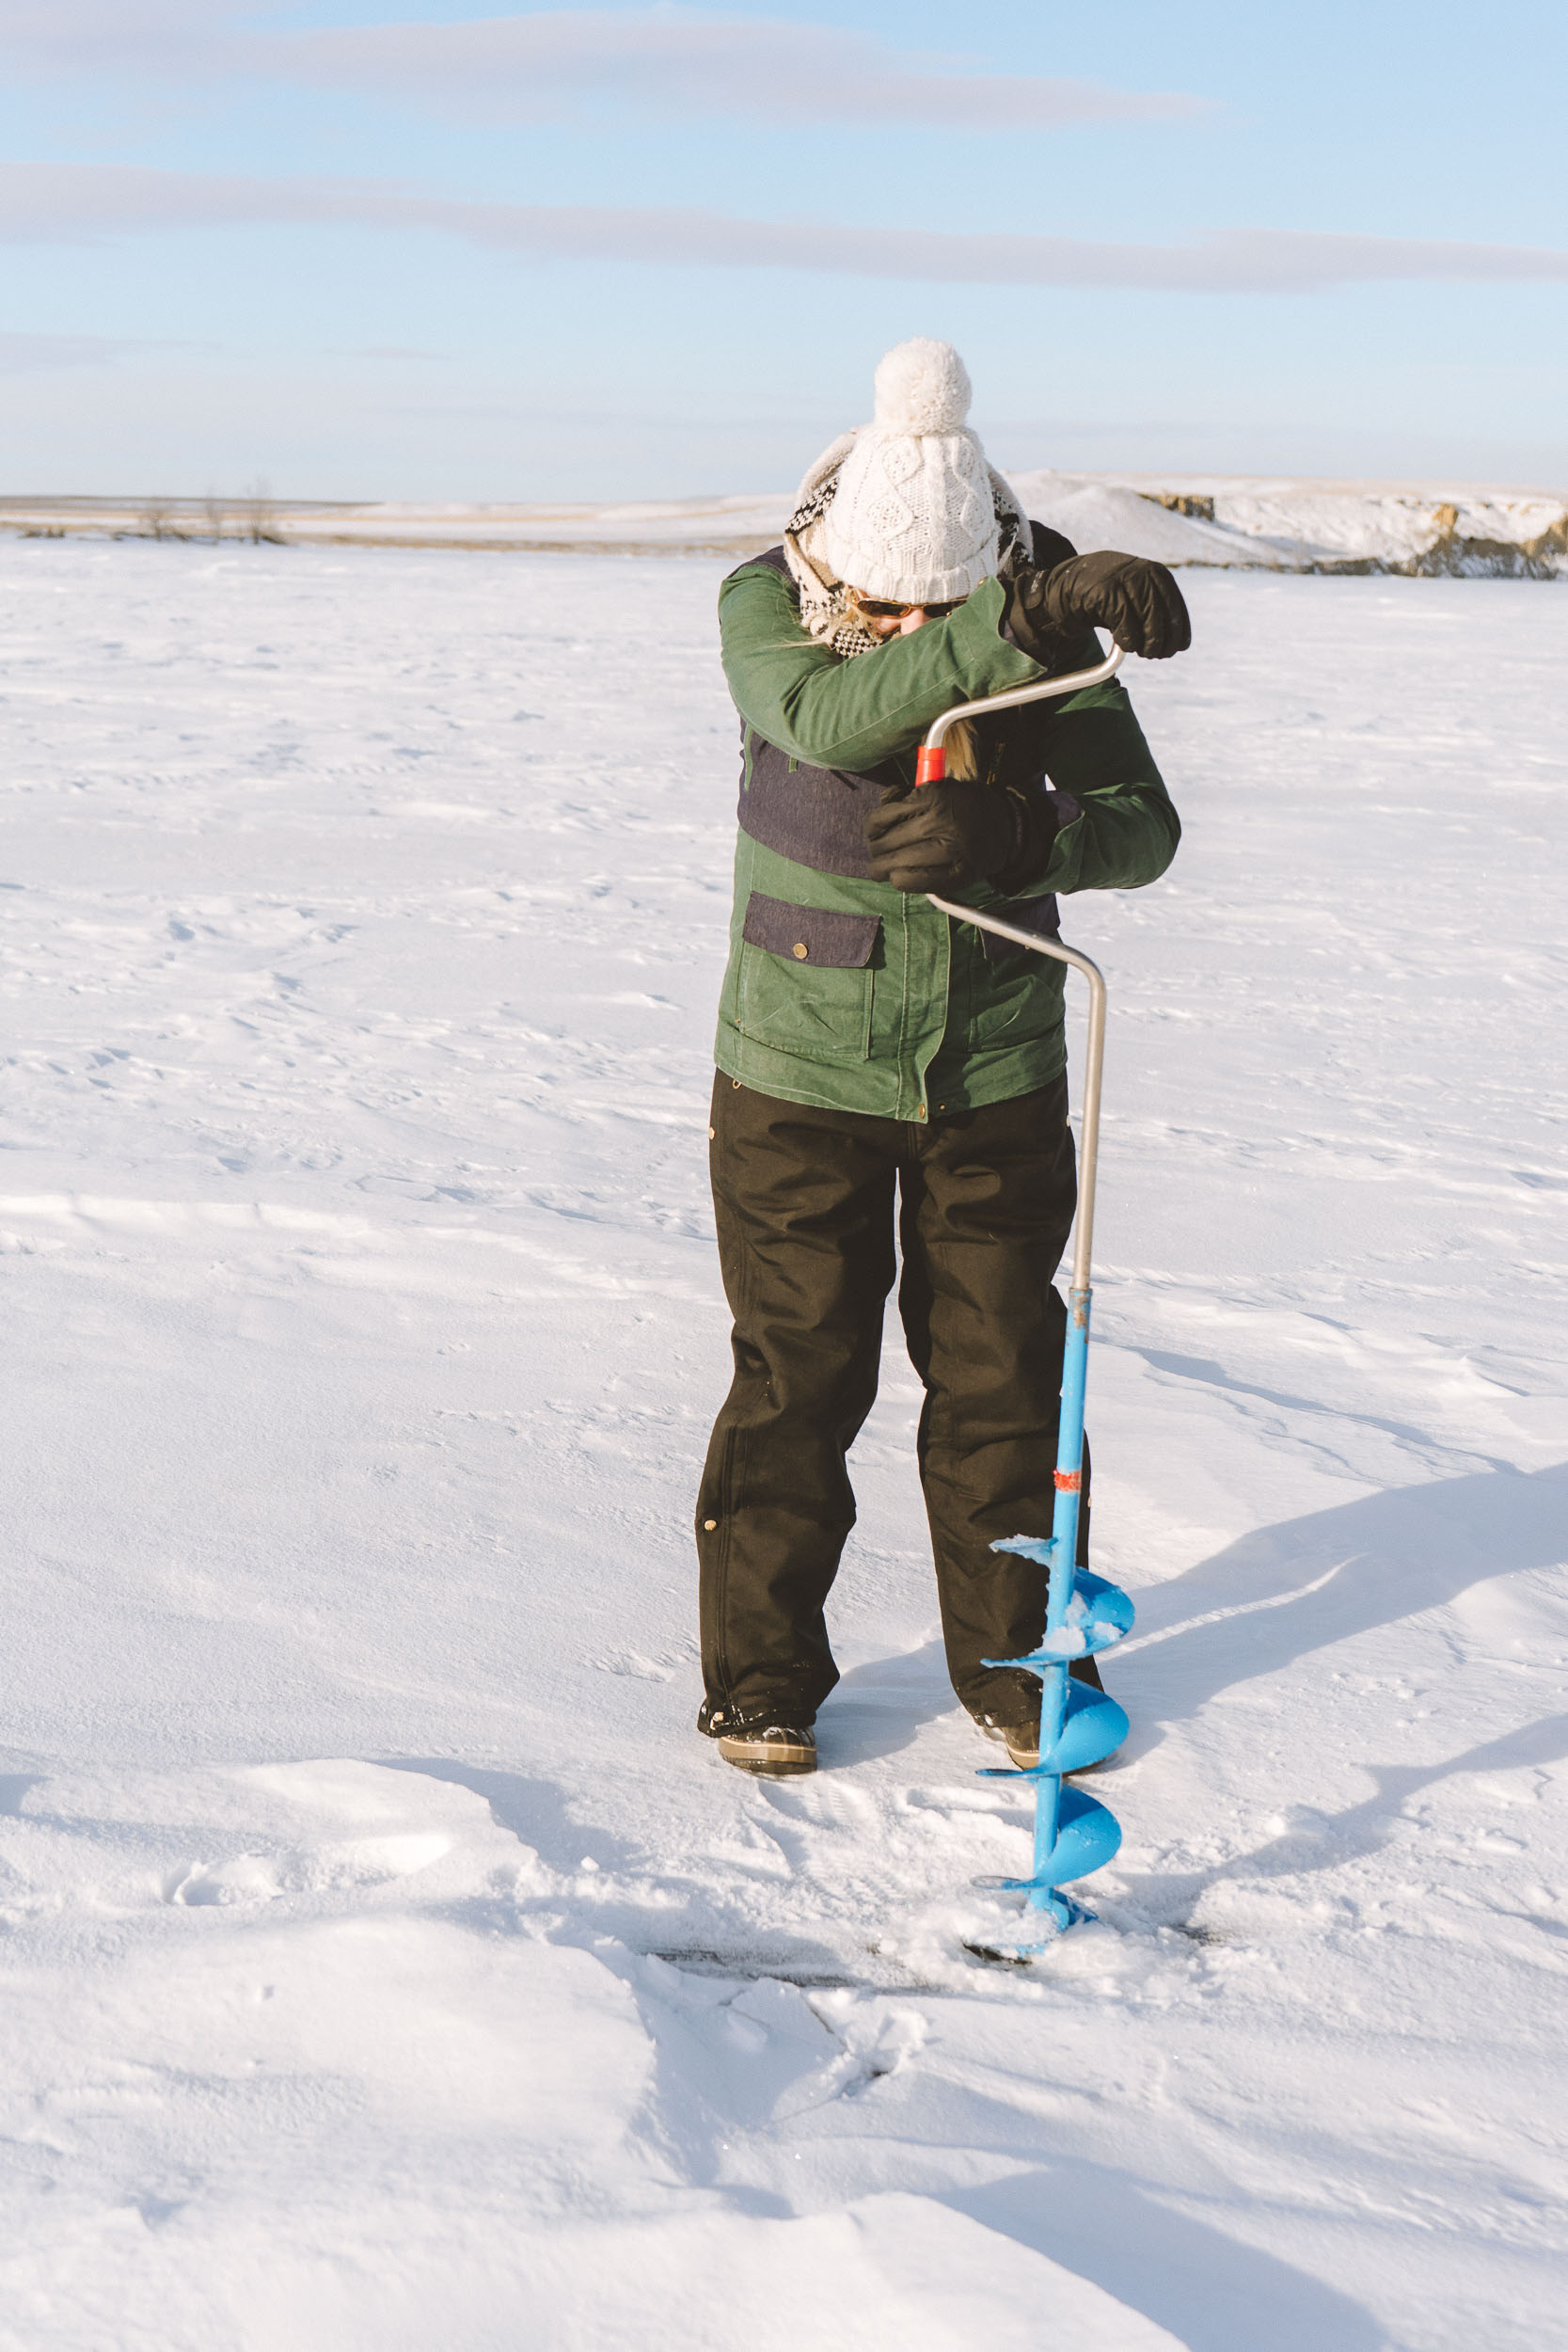 Adventure blogger Bri Sul Ice fishing at Petrolia Lake near Winnett, Montana using a hand auger to dig holes.